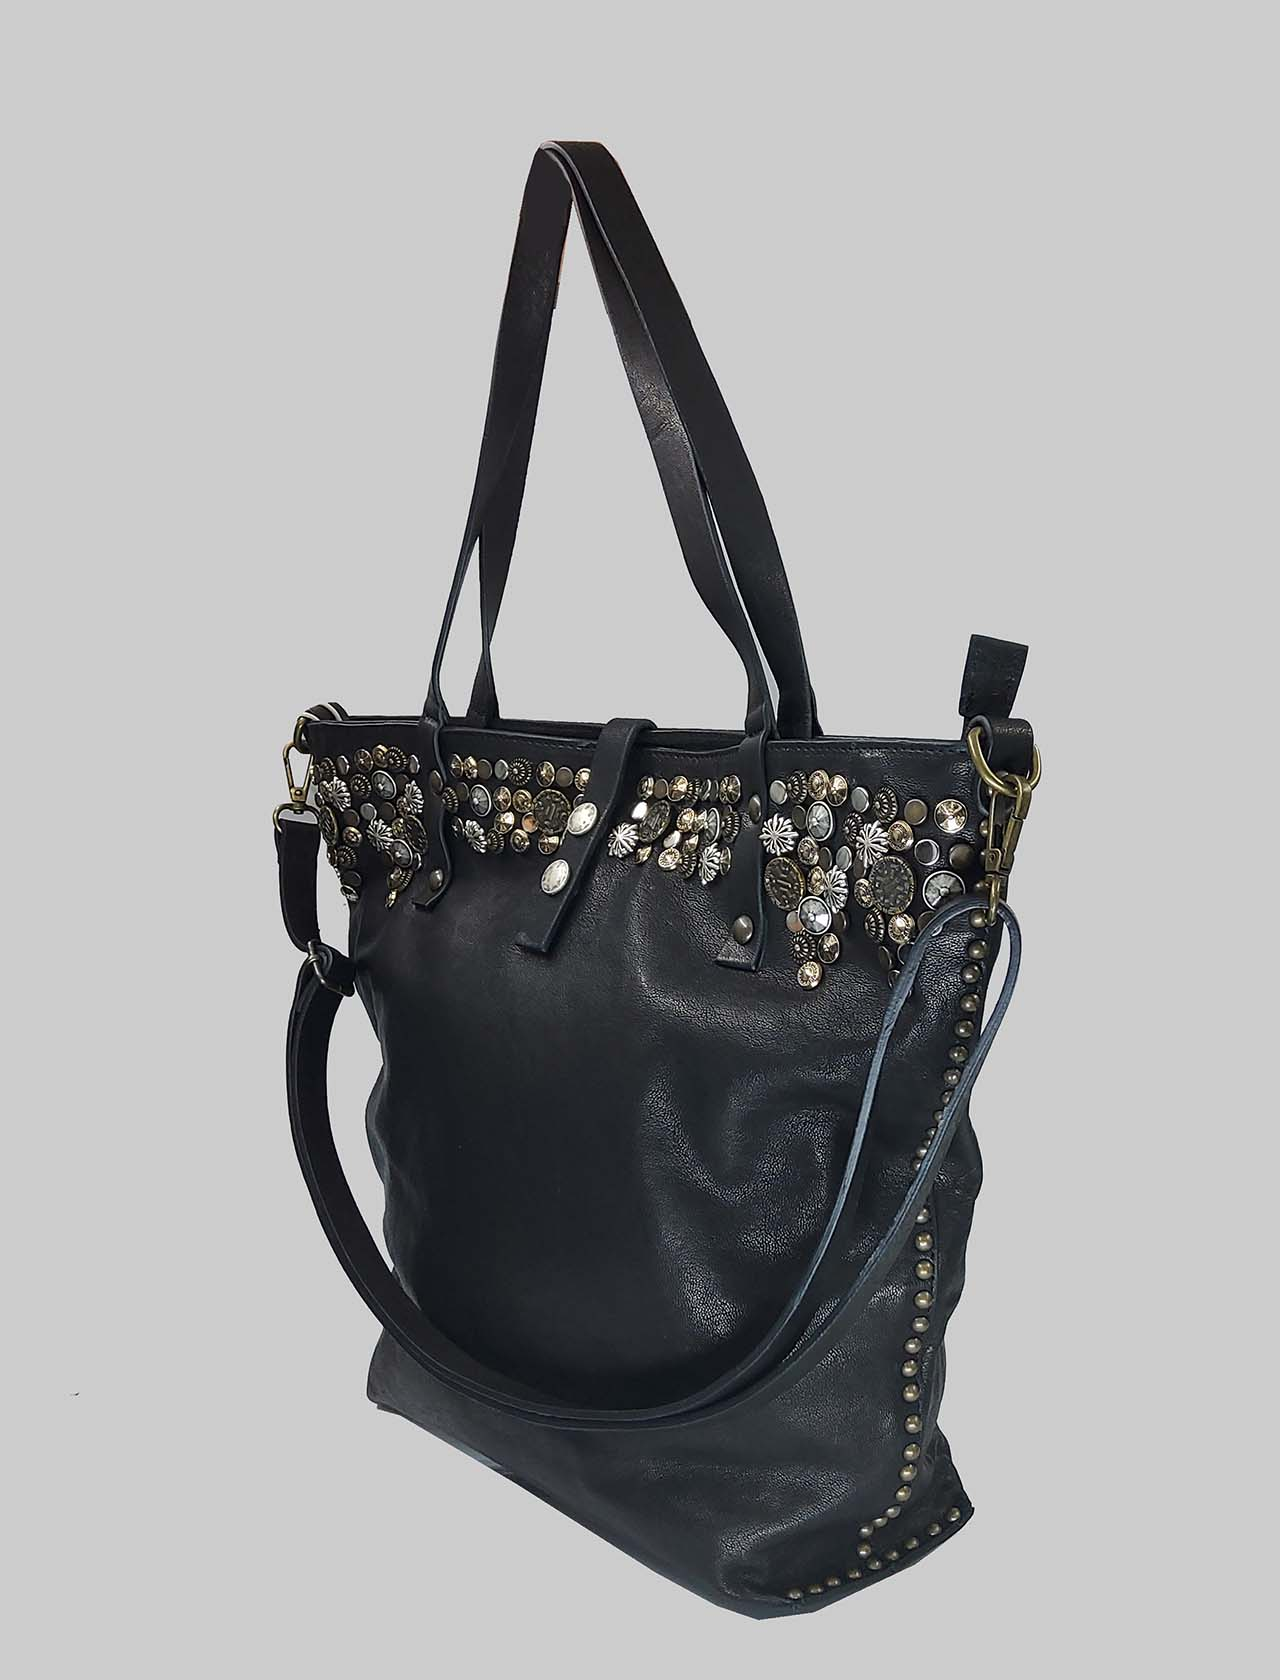 Woman Shopping Bag in Black Leather with Studs and Adjustable Leather Shoulder Strap Spatarella | Bags and backpacks | INES001